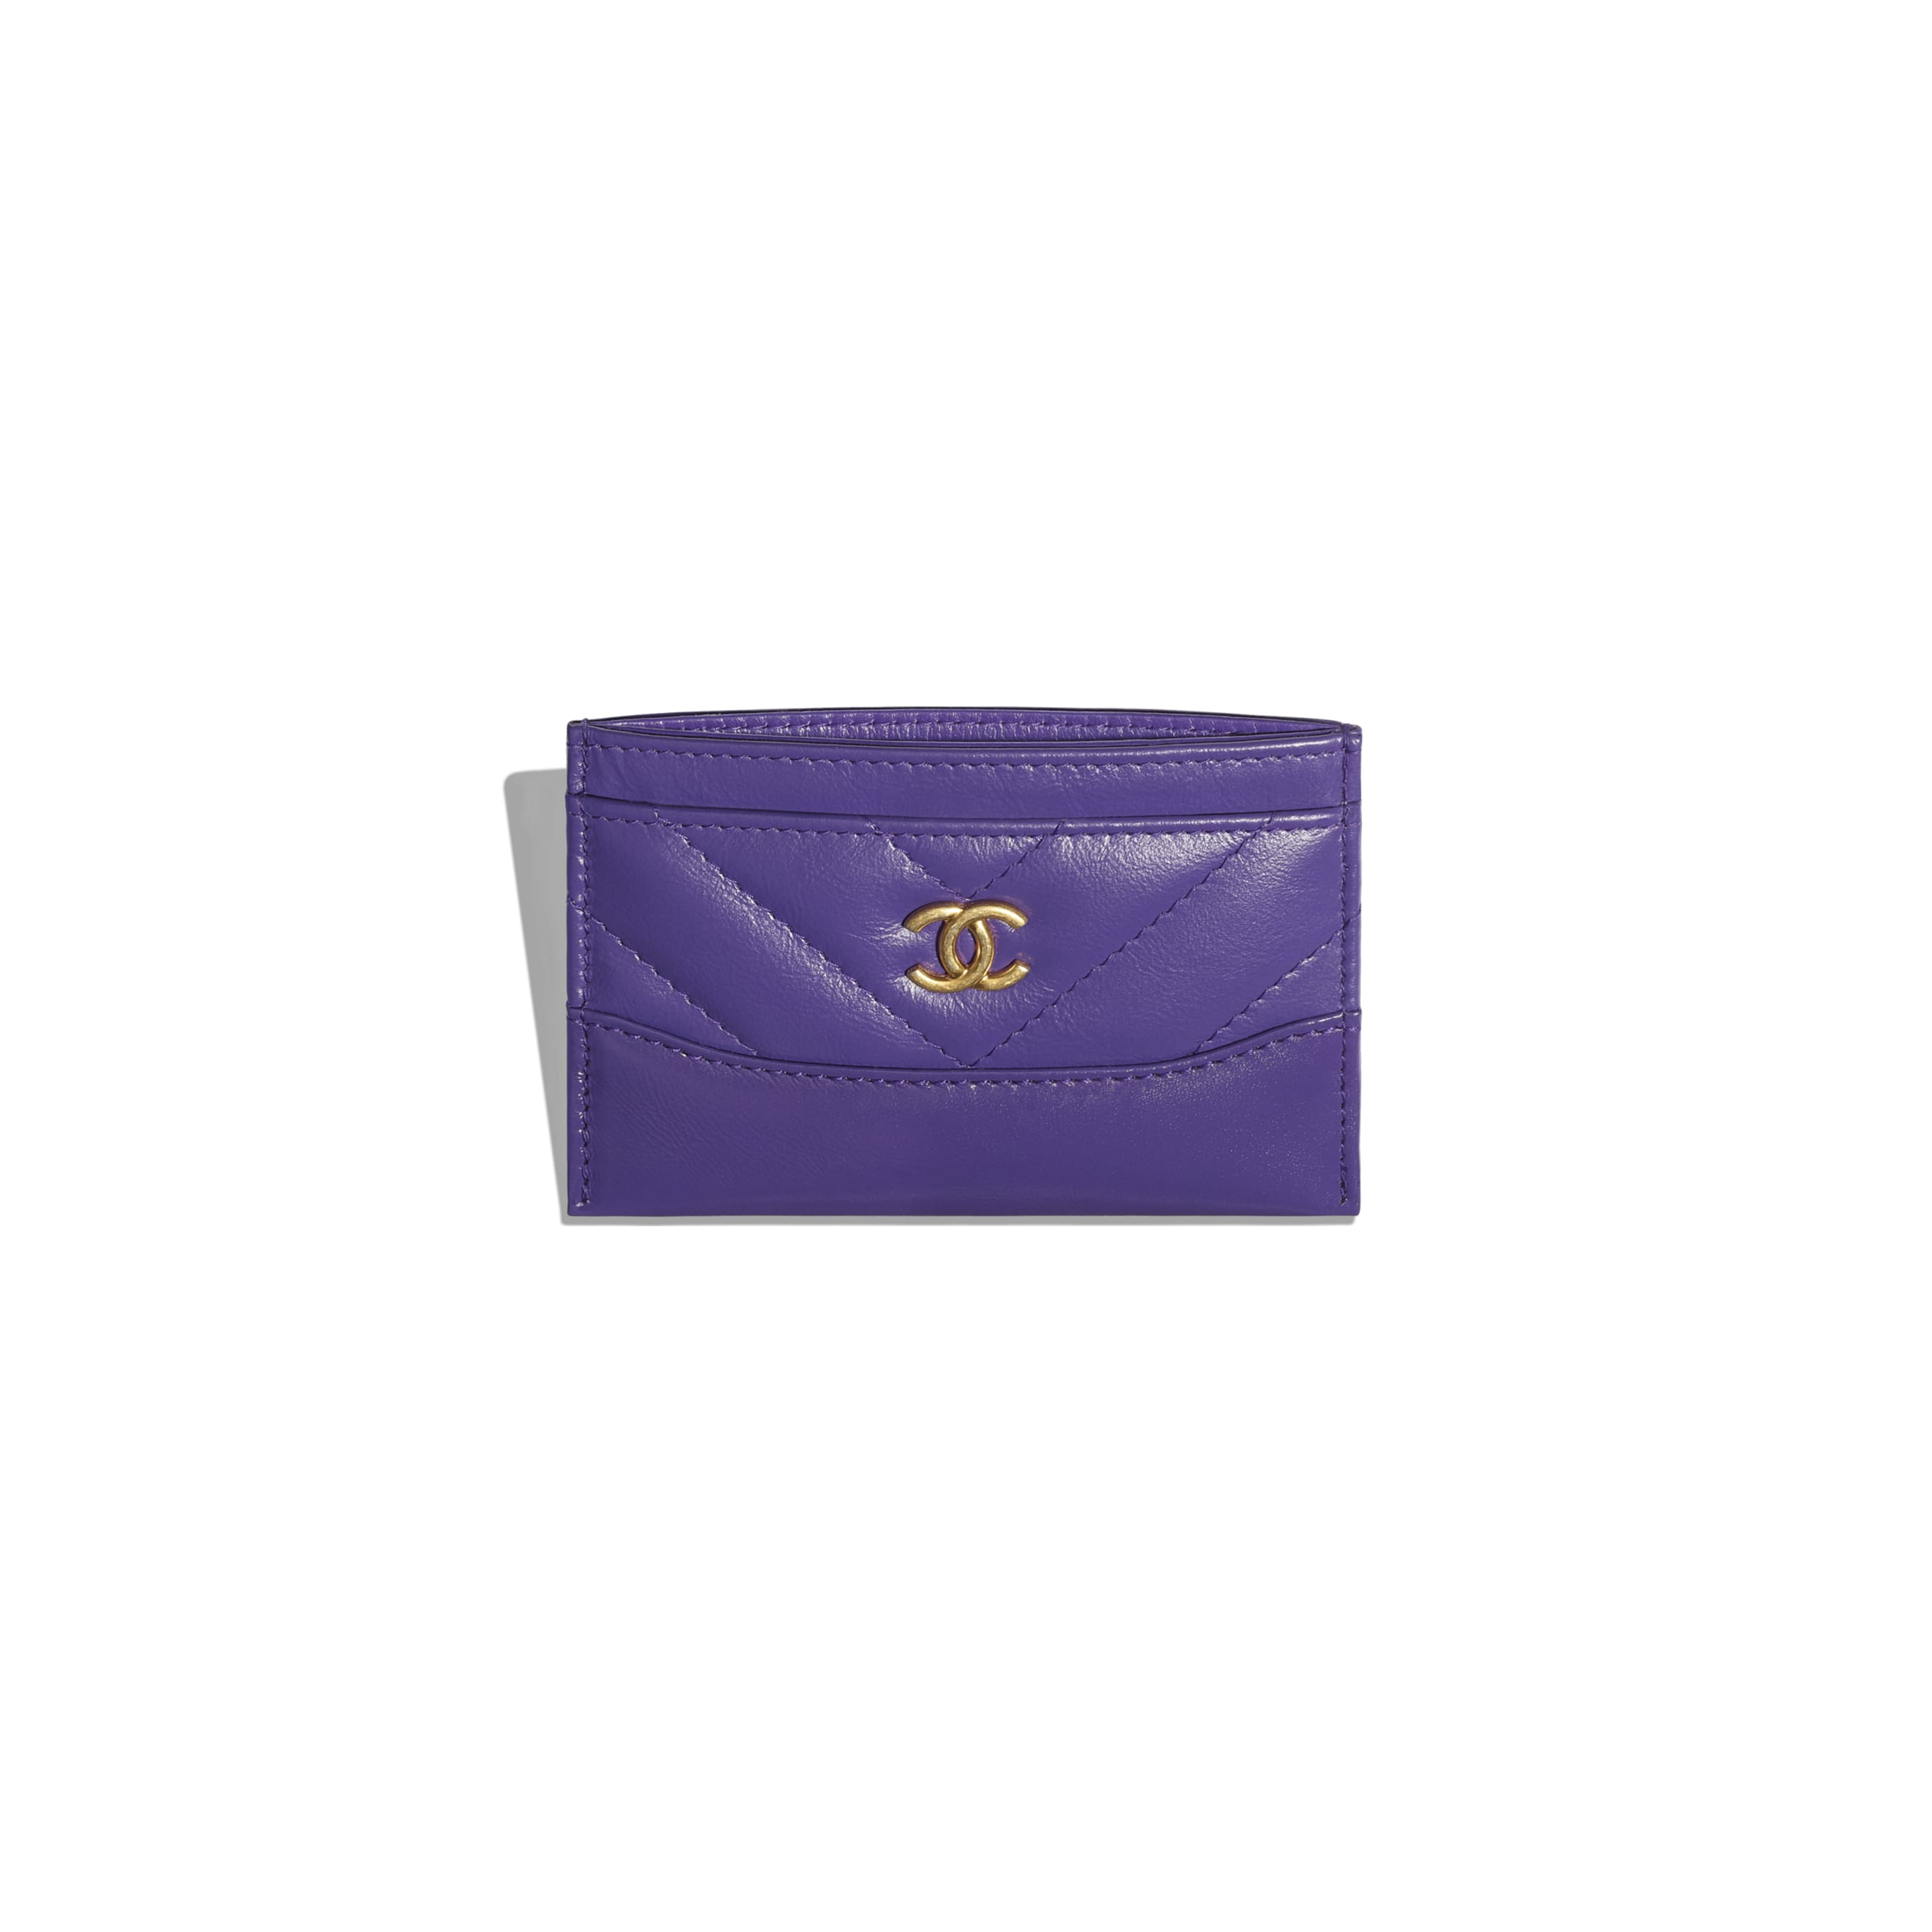 Card Holder - Purple - Aged Calfskin, Smooth Calfskin, Gold-Tone, Silver-Tone & Ruthenium-Finish Metal - CHANEL - Other view - see standard sized version